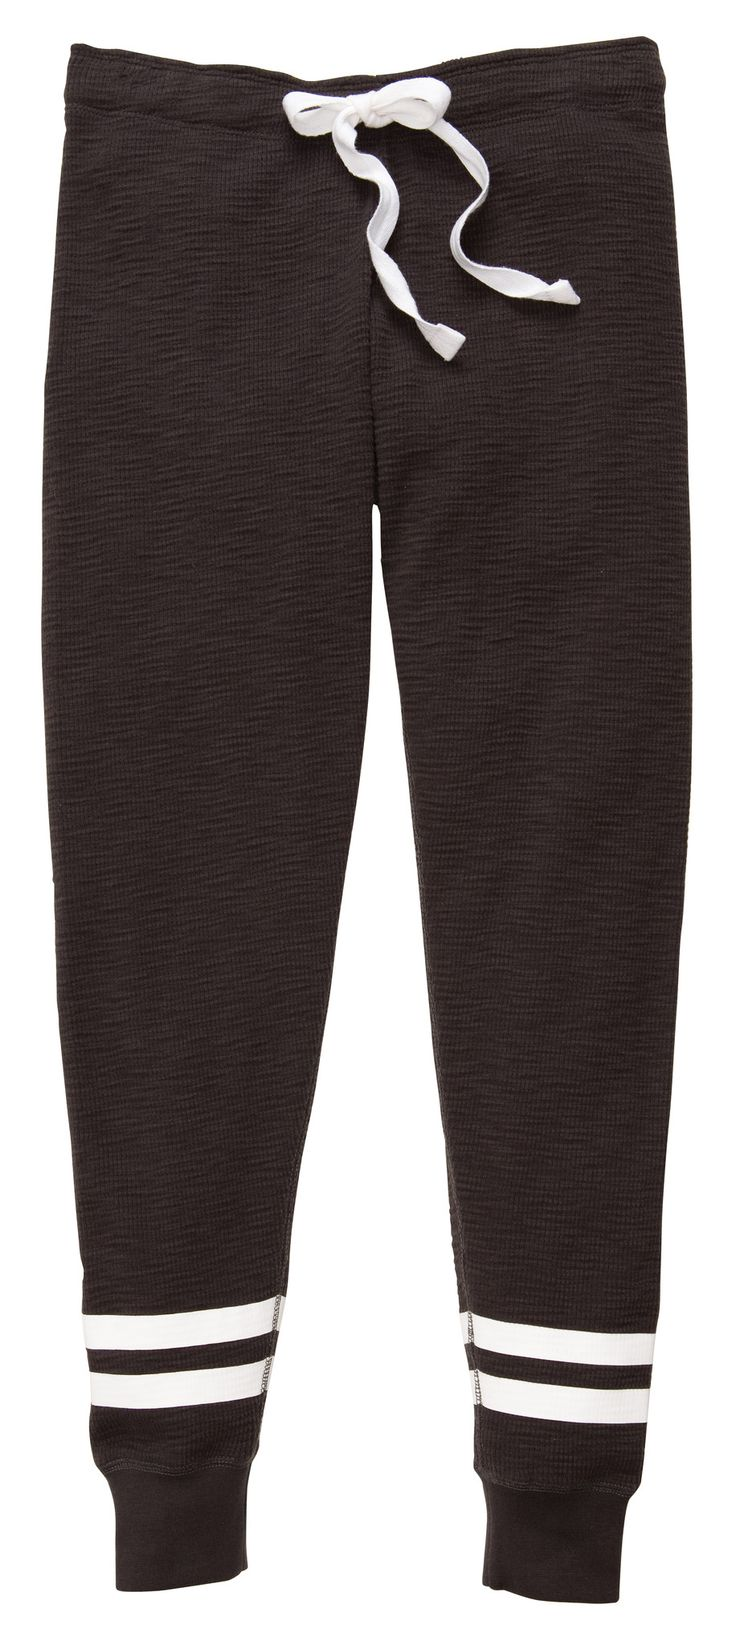 Take your style to a another level with this new Women's thermal jogger pant! Featuring cotton thermal slub fabric with contrasting drawstring with an elastic waistband, and athletic printed stripes a